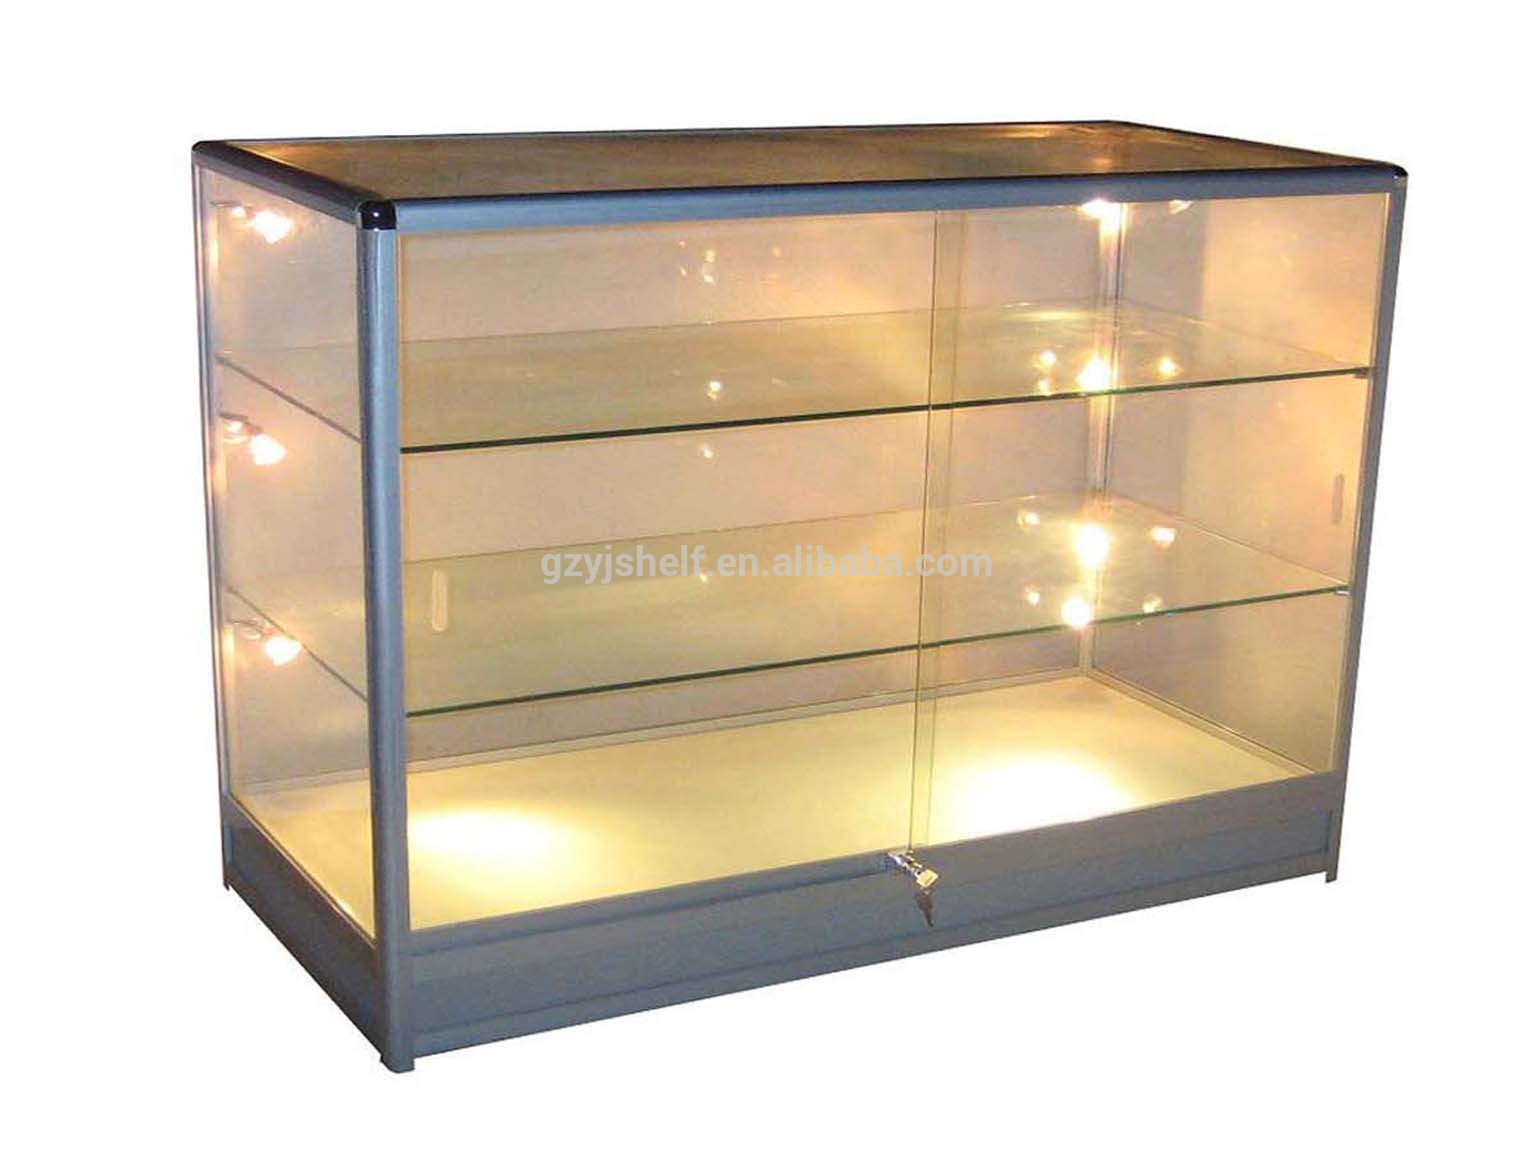 #9E702D Lockable Glass Display Cabinets/living Room Showcase  with 1536x1152 px of Highly Rated Glass Display Cabinets To Hire 11521536 picture/photo @ avoidforclosure.info